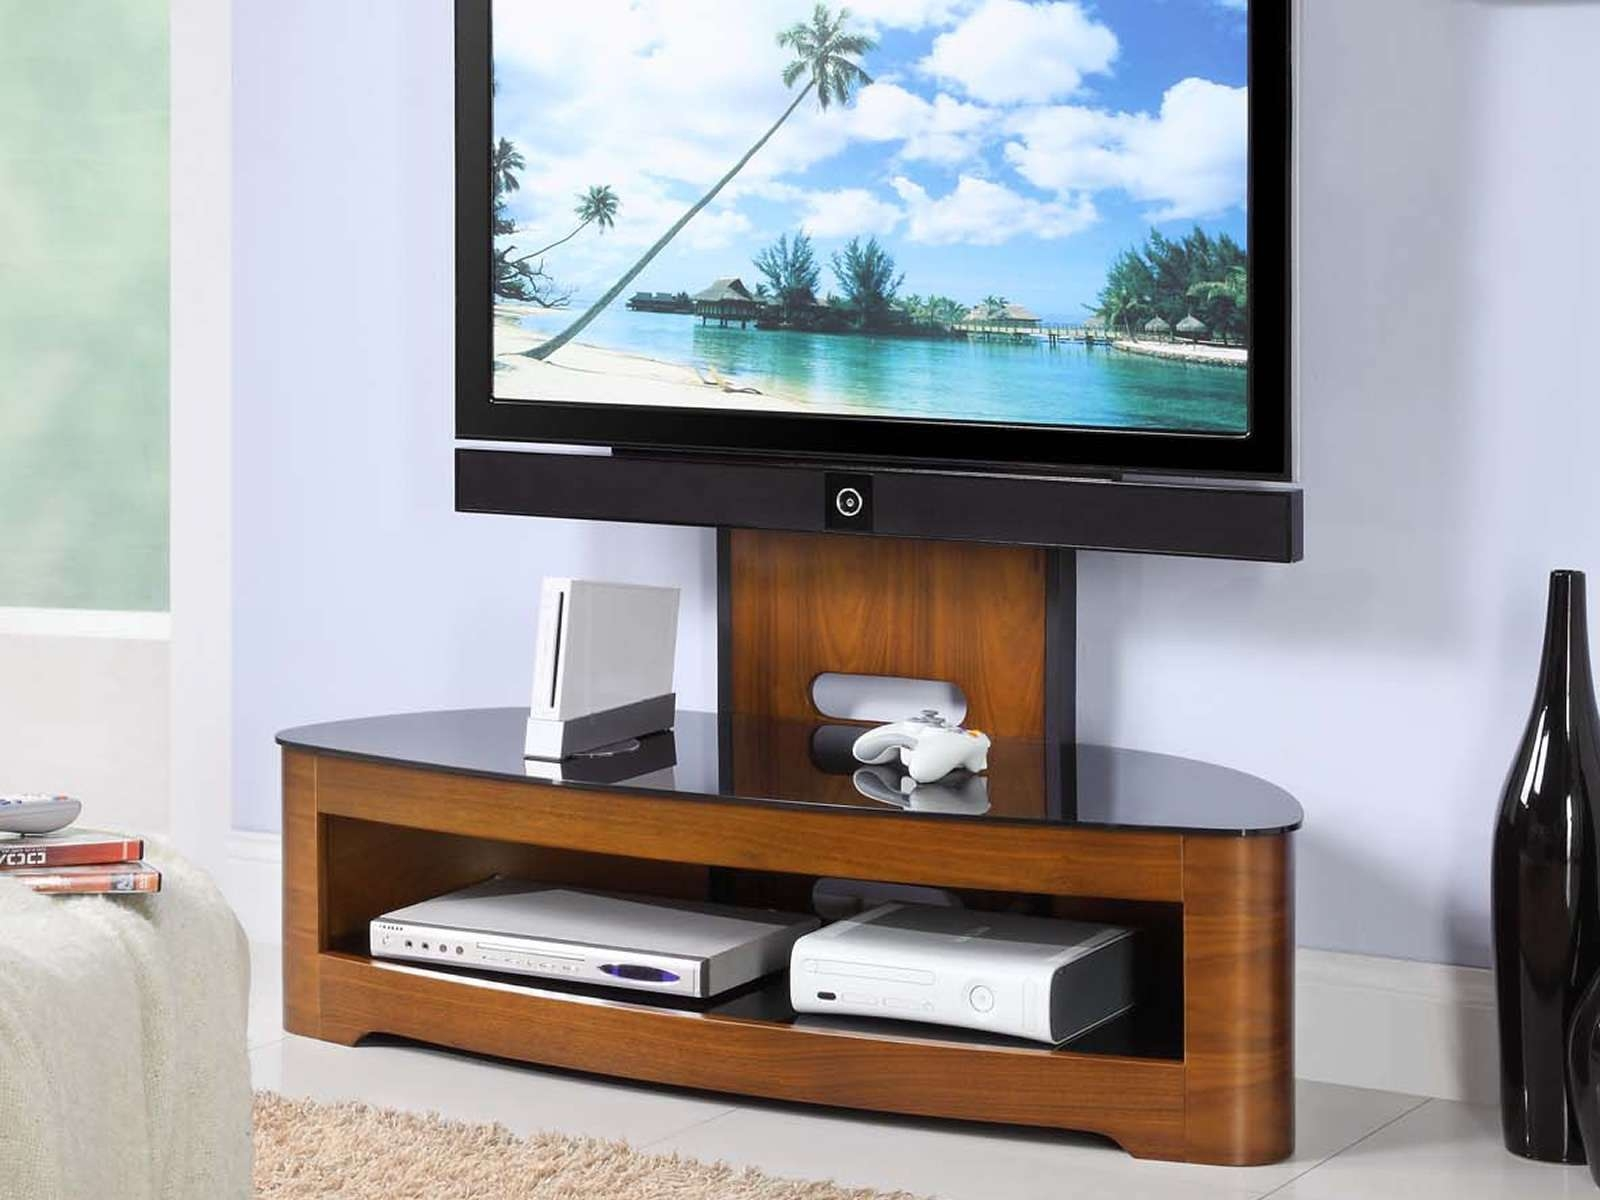 Home Decor: Bautiful Tv Stands With Flat Panel Mounts Combine Intended For Modern Tv Stands With Mount (View 8 of 15)